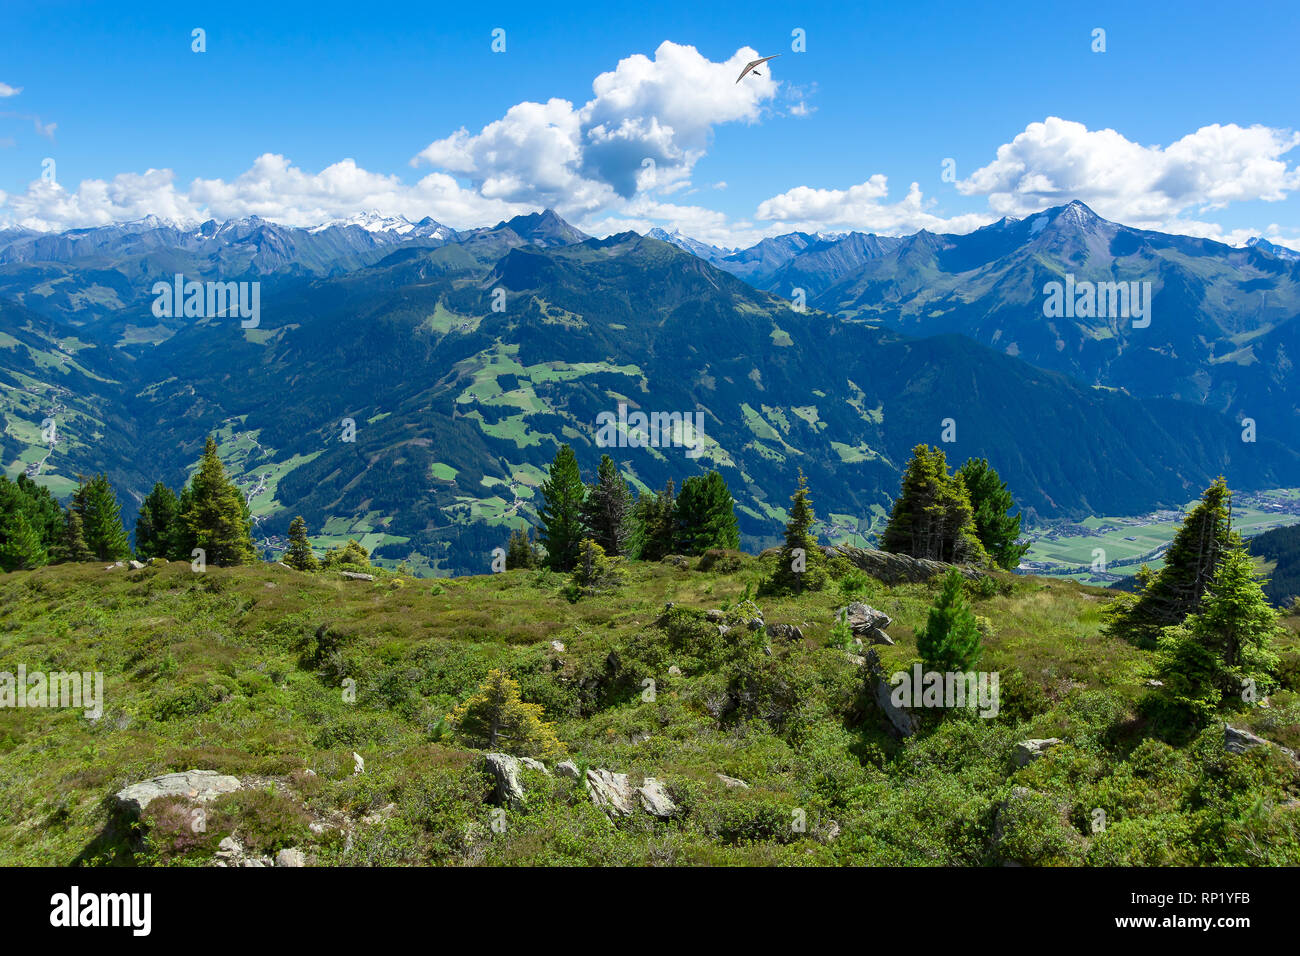 Summer mountain landscape with blue cloudy sky and hang glider. Austria, Tyrol, Zillertal Valley, Zillertal High Alpine Road. Stock Photo